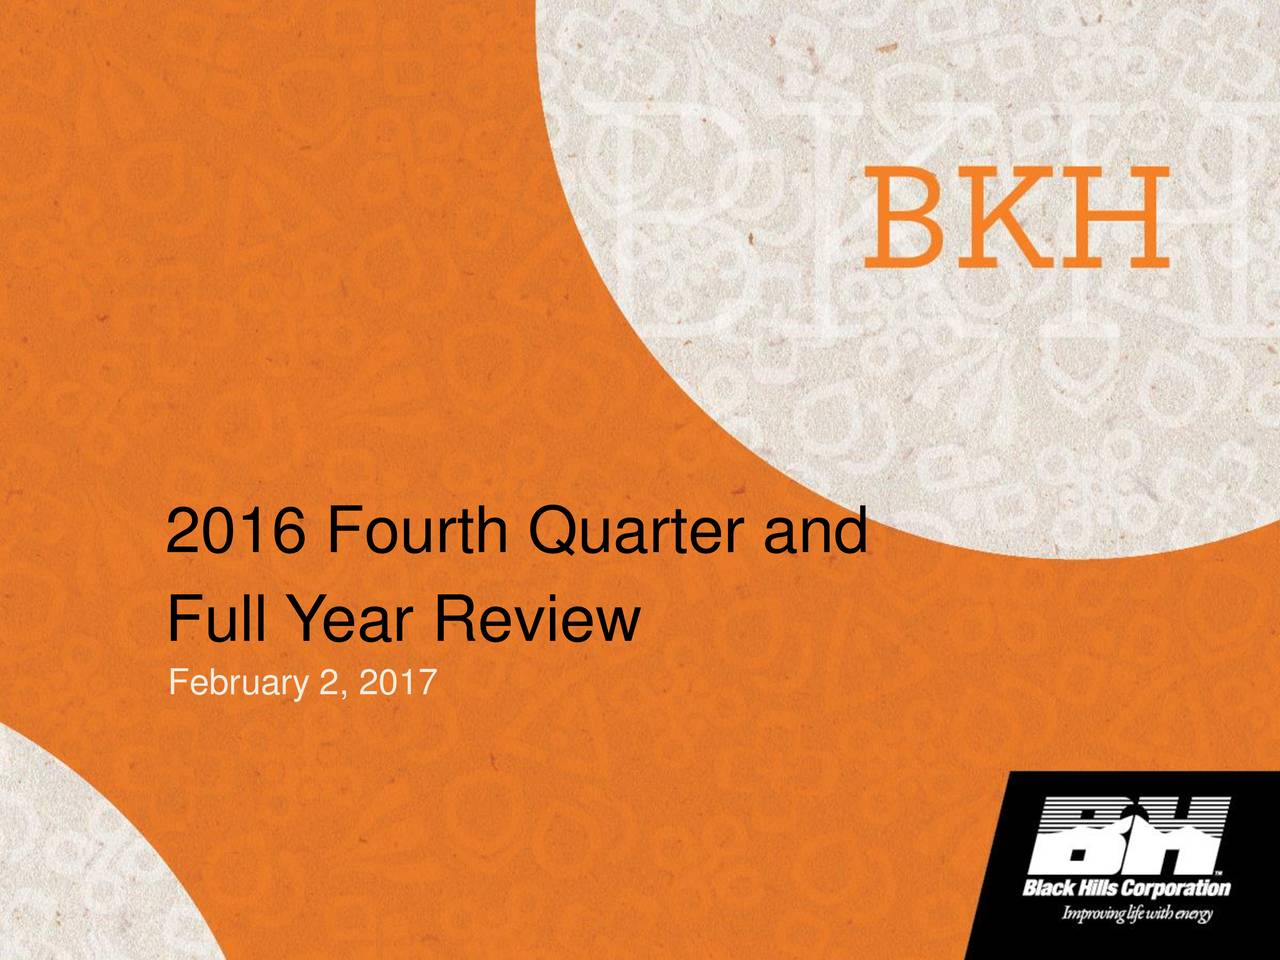 Full Year Review February 2, 2017